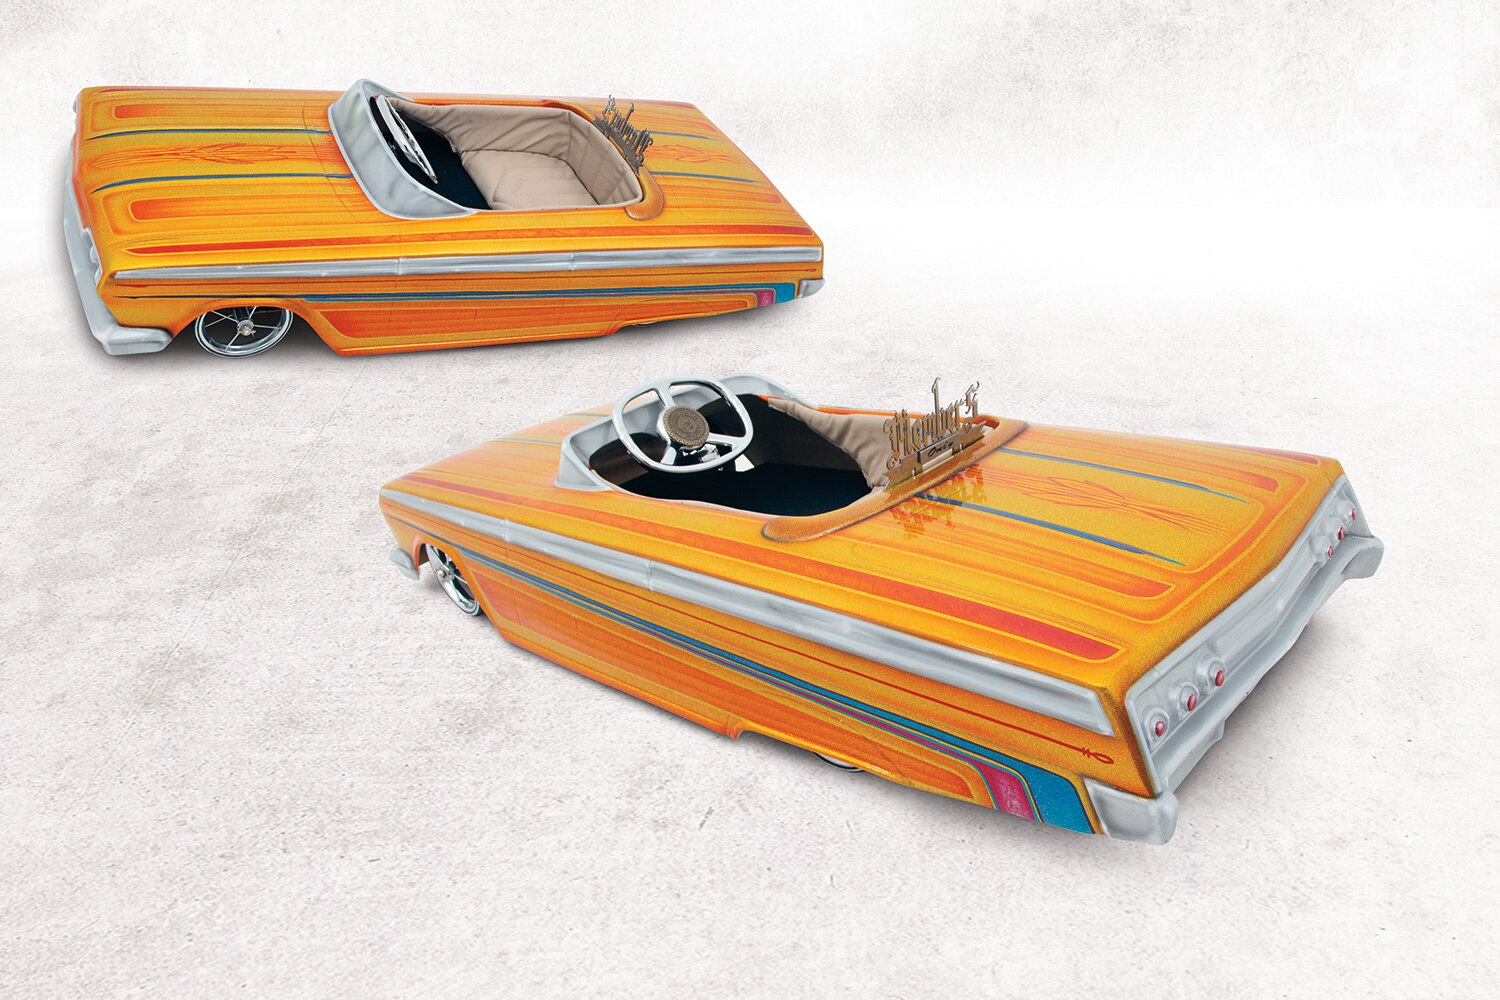 1962-chevrolet-impala-pedal-car-double-feature-promo